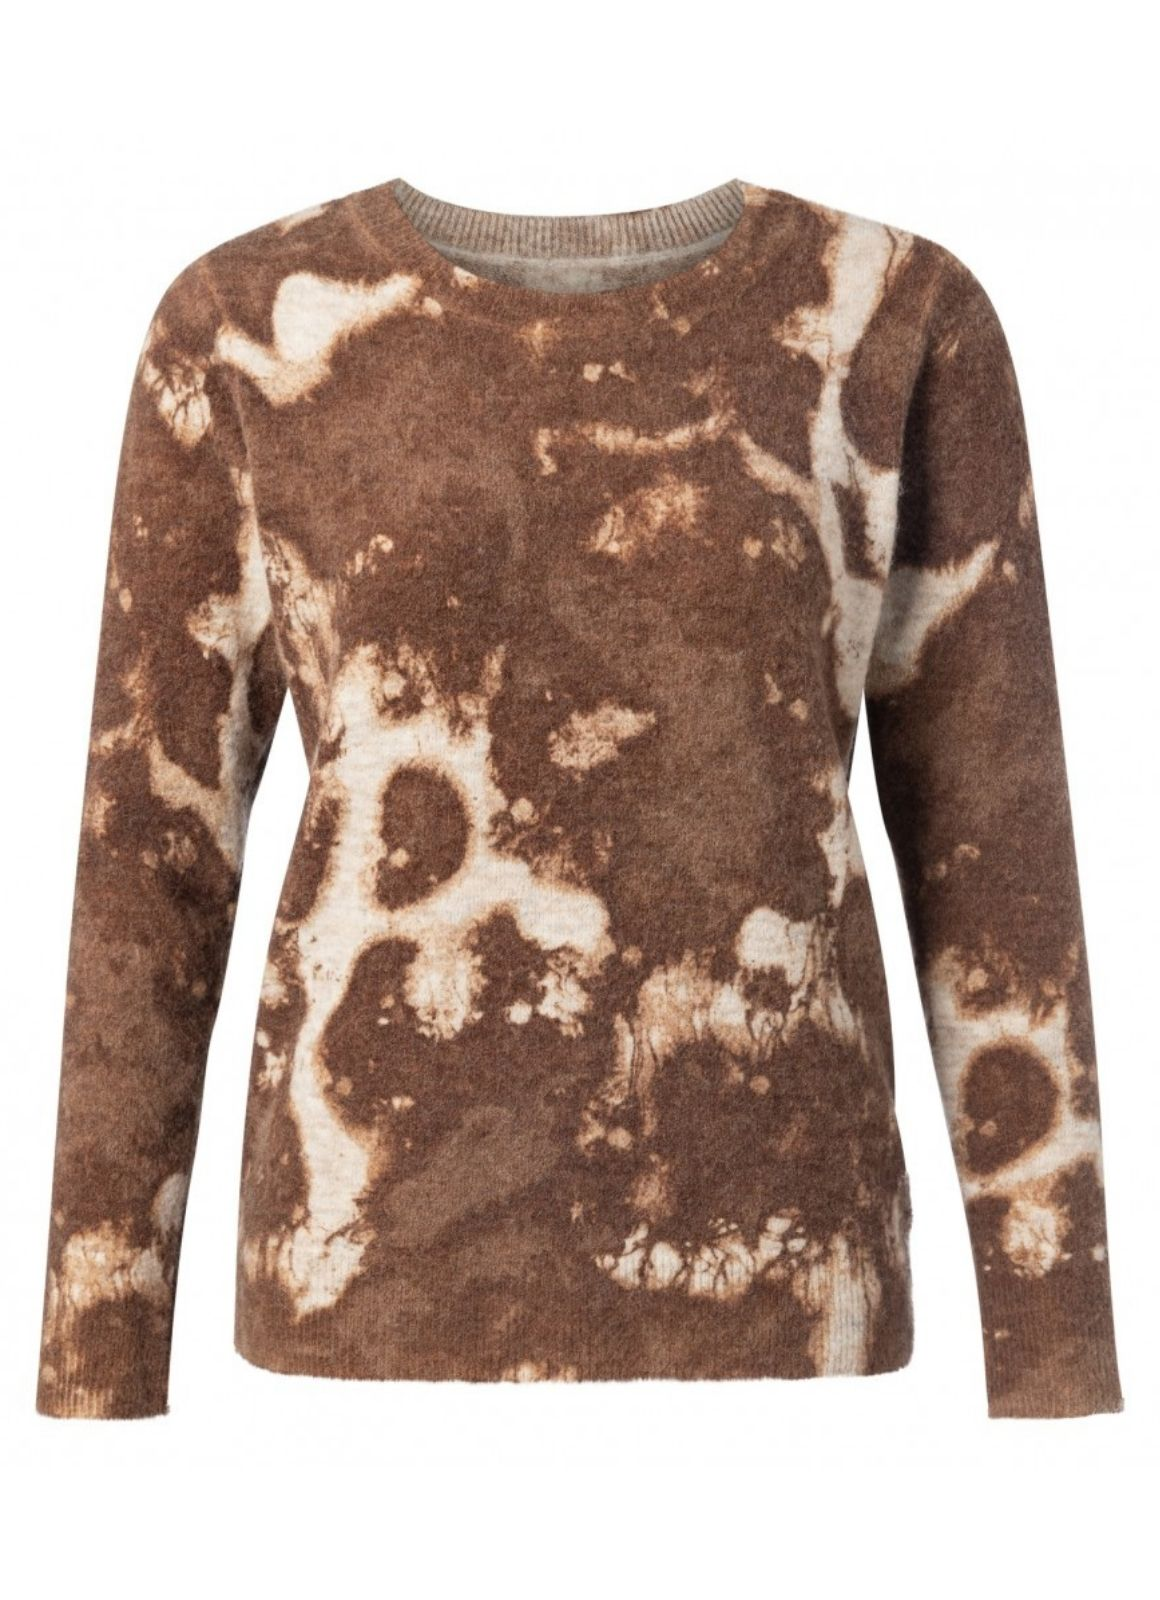 YAYA - Alpaca Blend Round Neck Sweater Inside Out Beige Melange